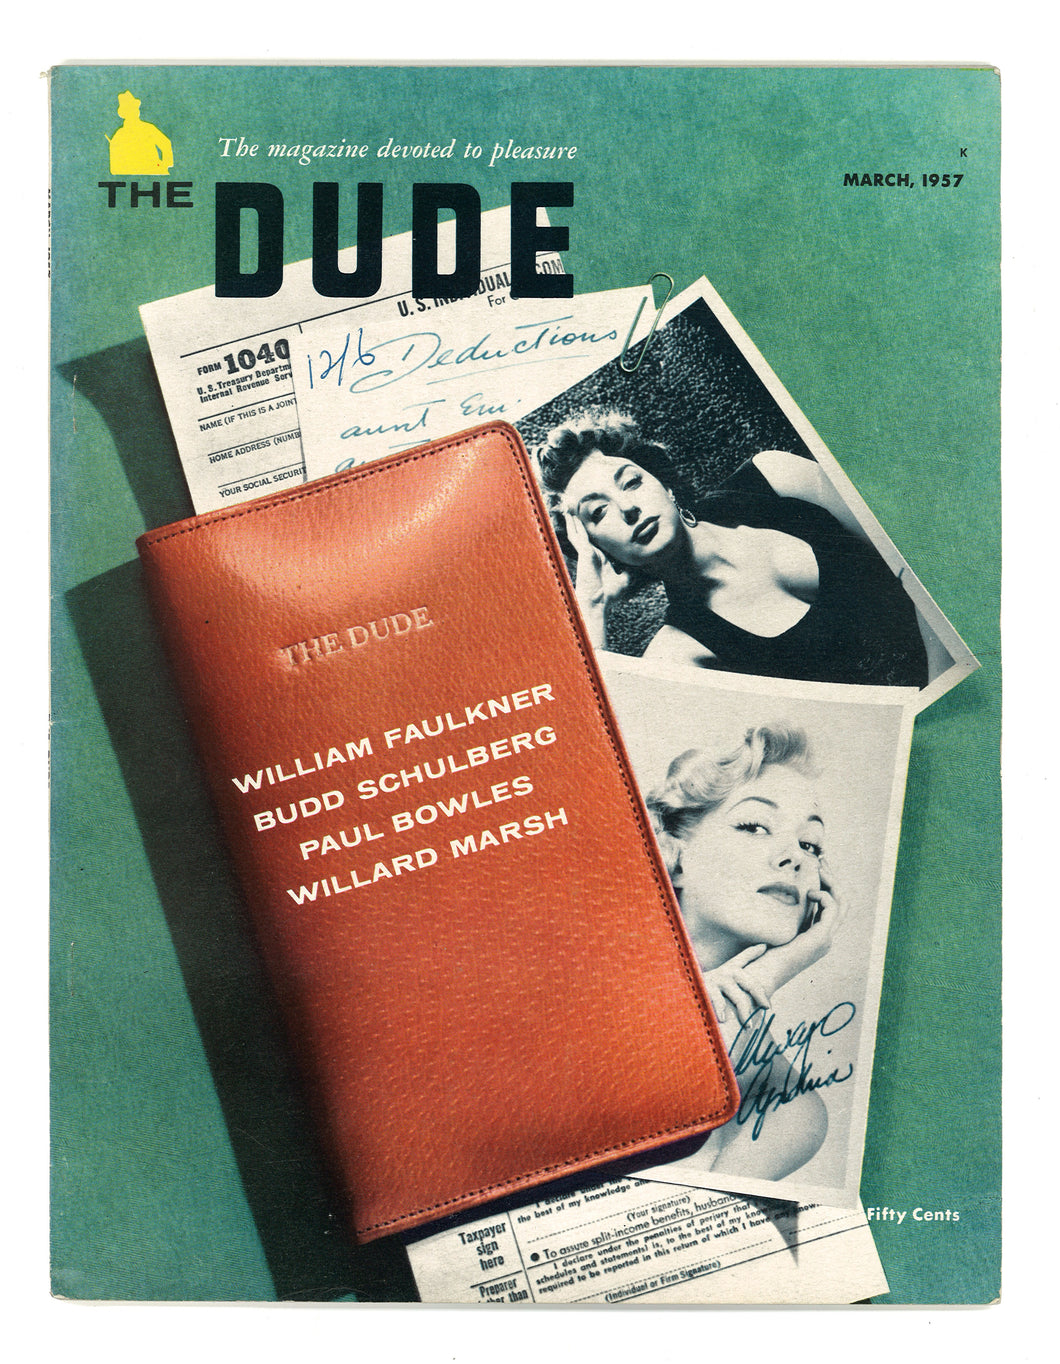 Dude Vol 1 No 4 March 1957